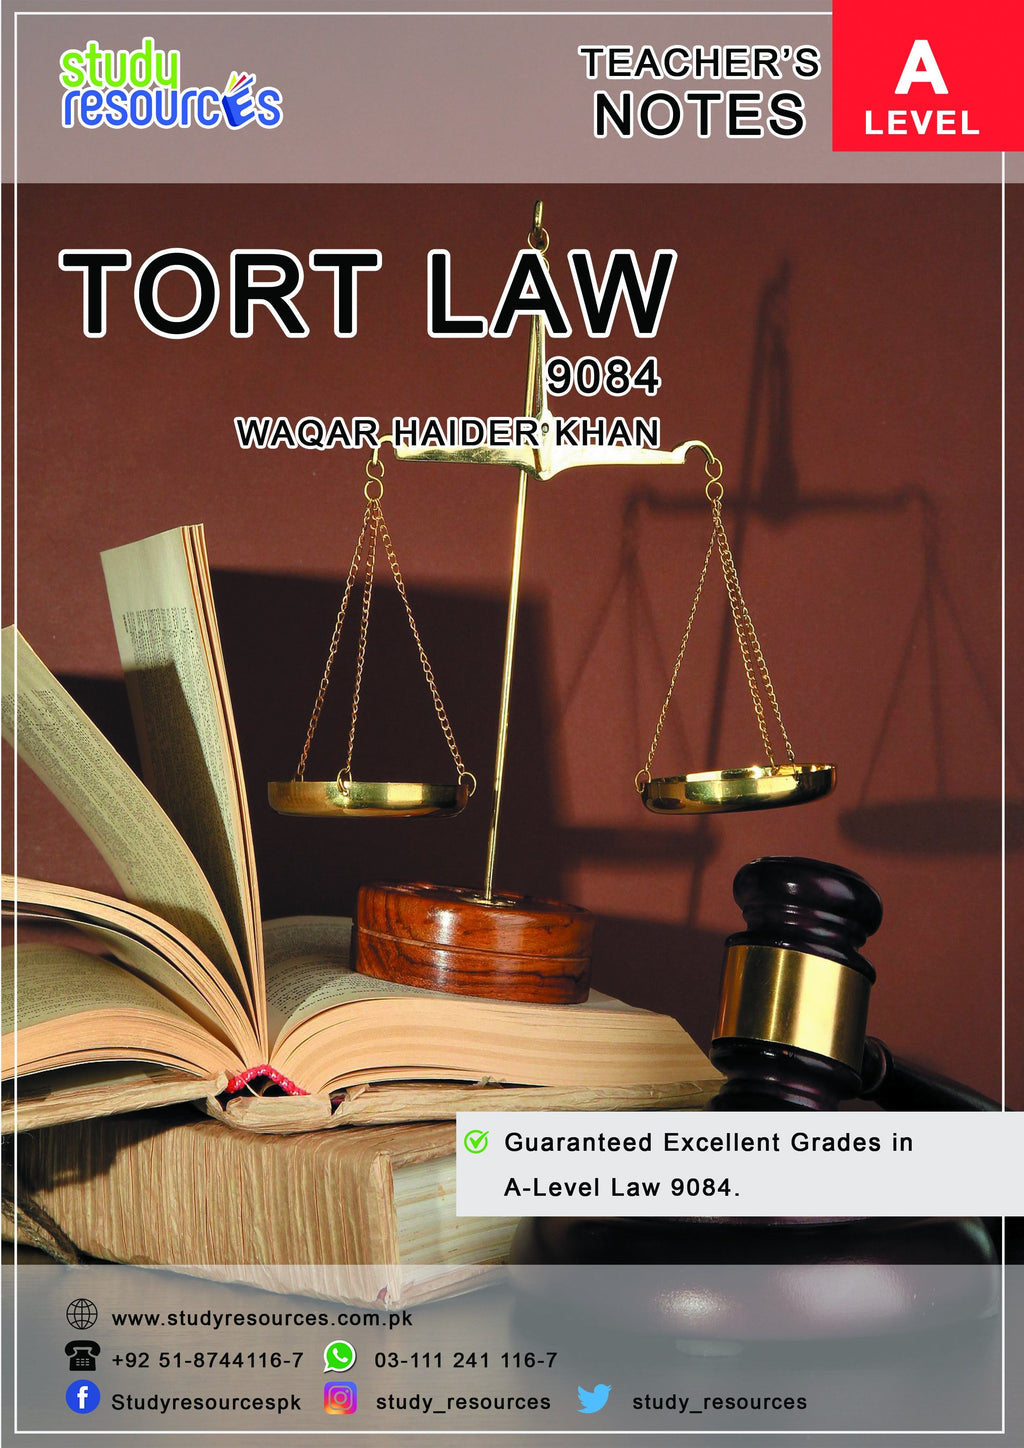 Cambridge A-Level (9084) Tort Law Recommended by Sir Waqar Haider Khan